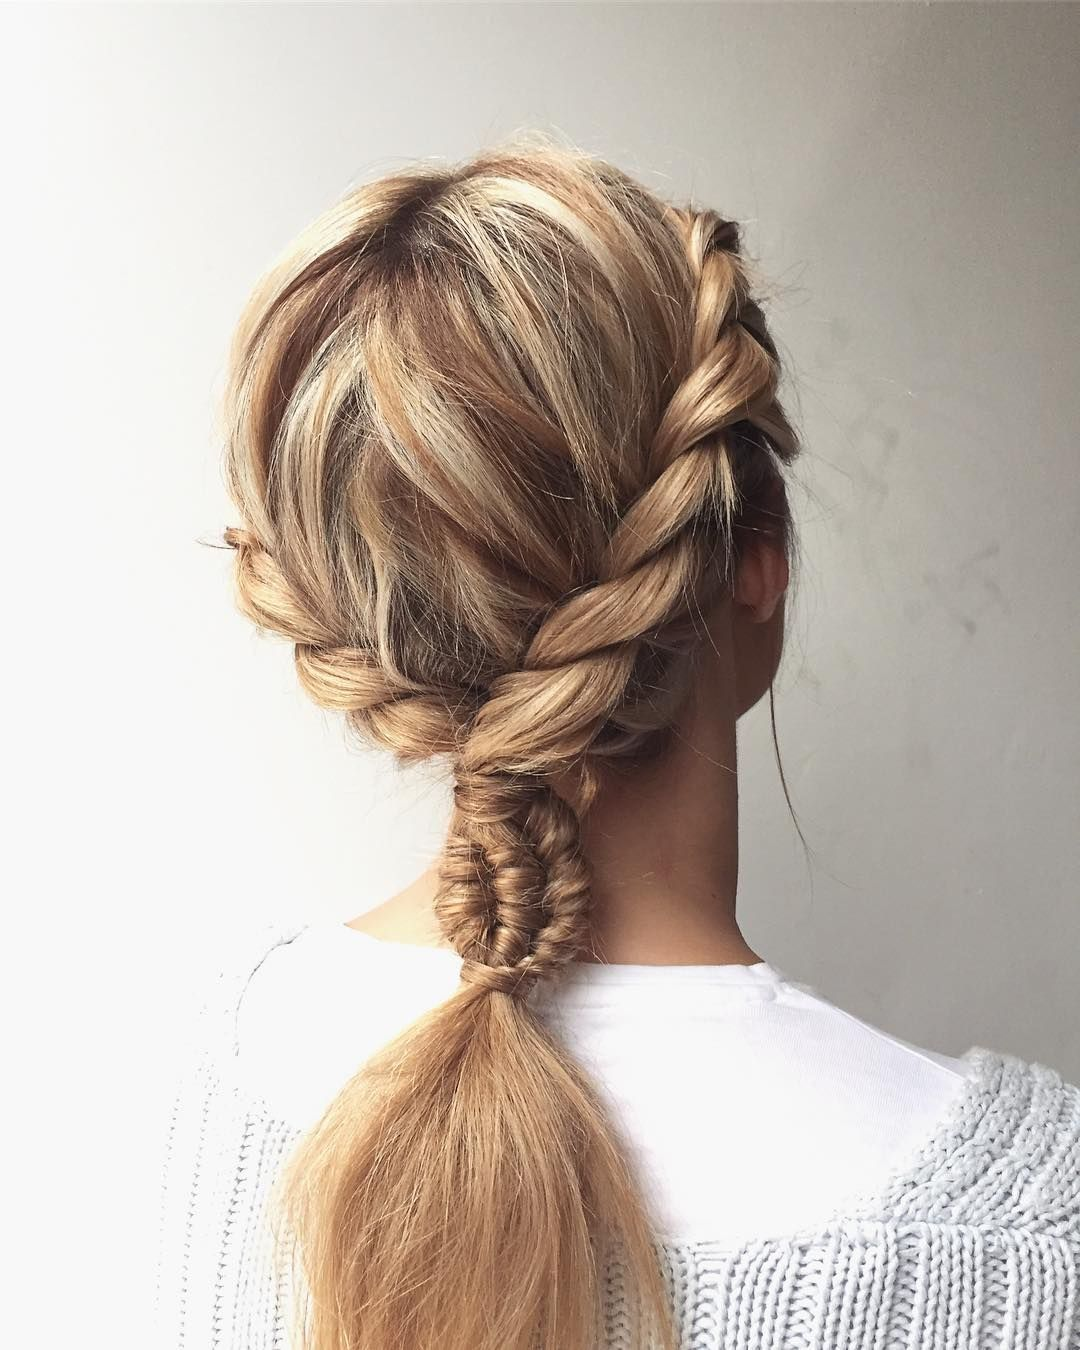 12 Top Braided Hairstyle Zara Tips 32 Best Pin By Zara Khan On Hairstyles For Braided Hairstyle H In 2020 Braided Hairstyles Stylish Hair Cool Braid Hairstyles